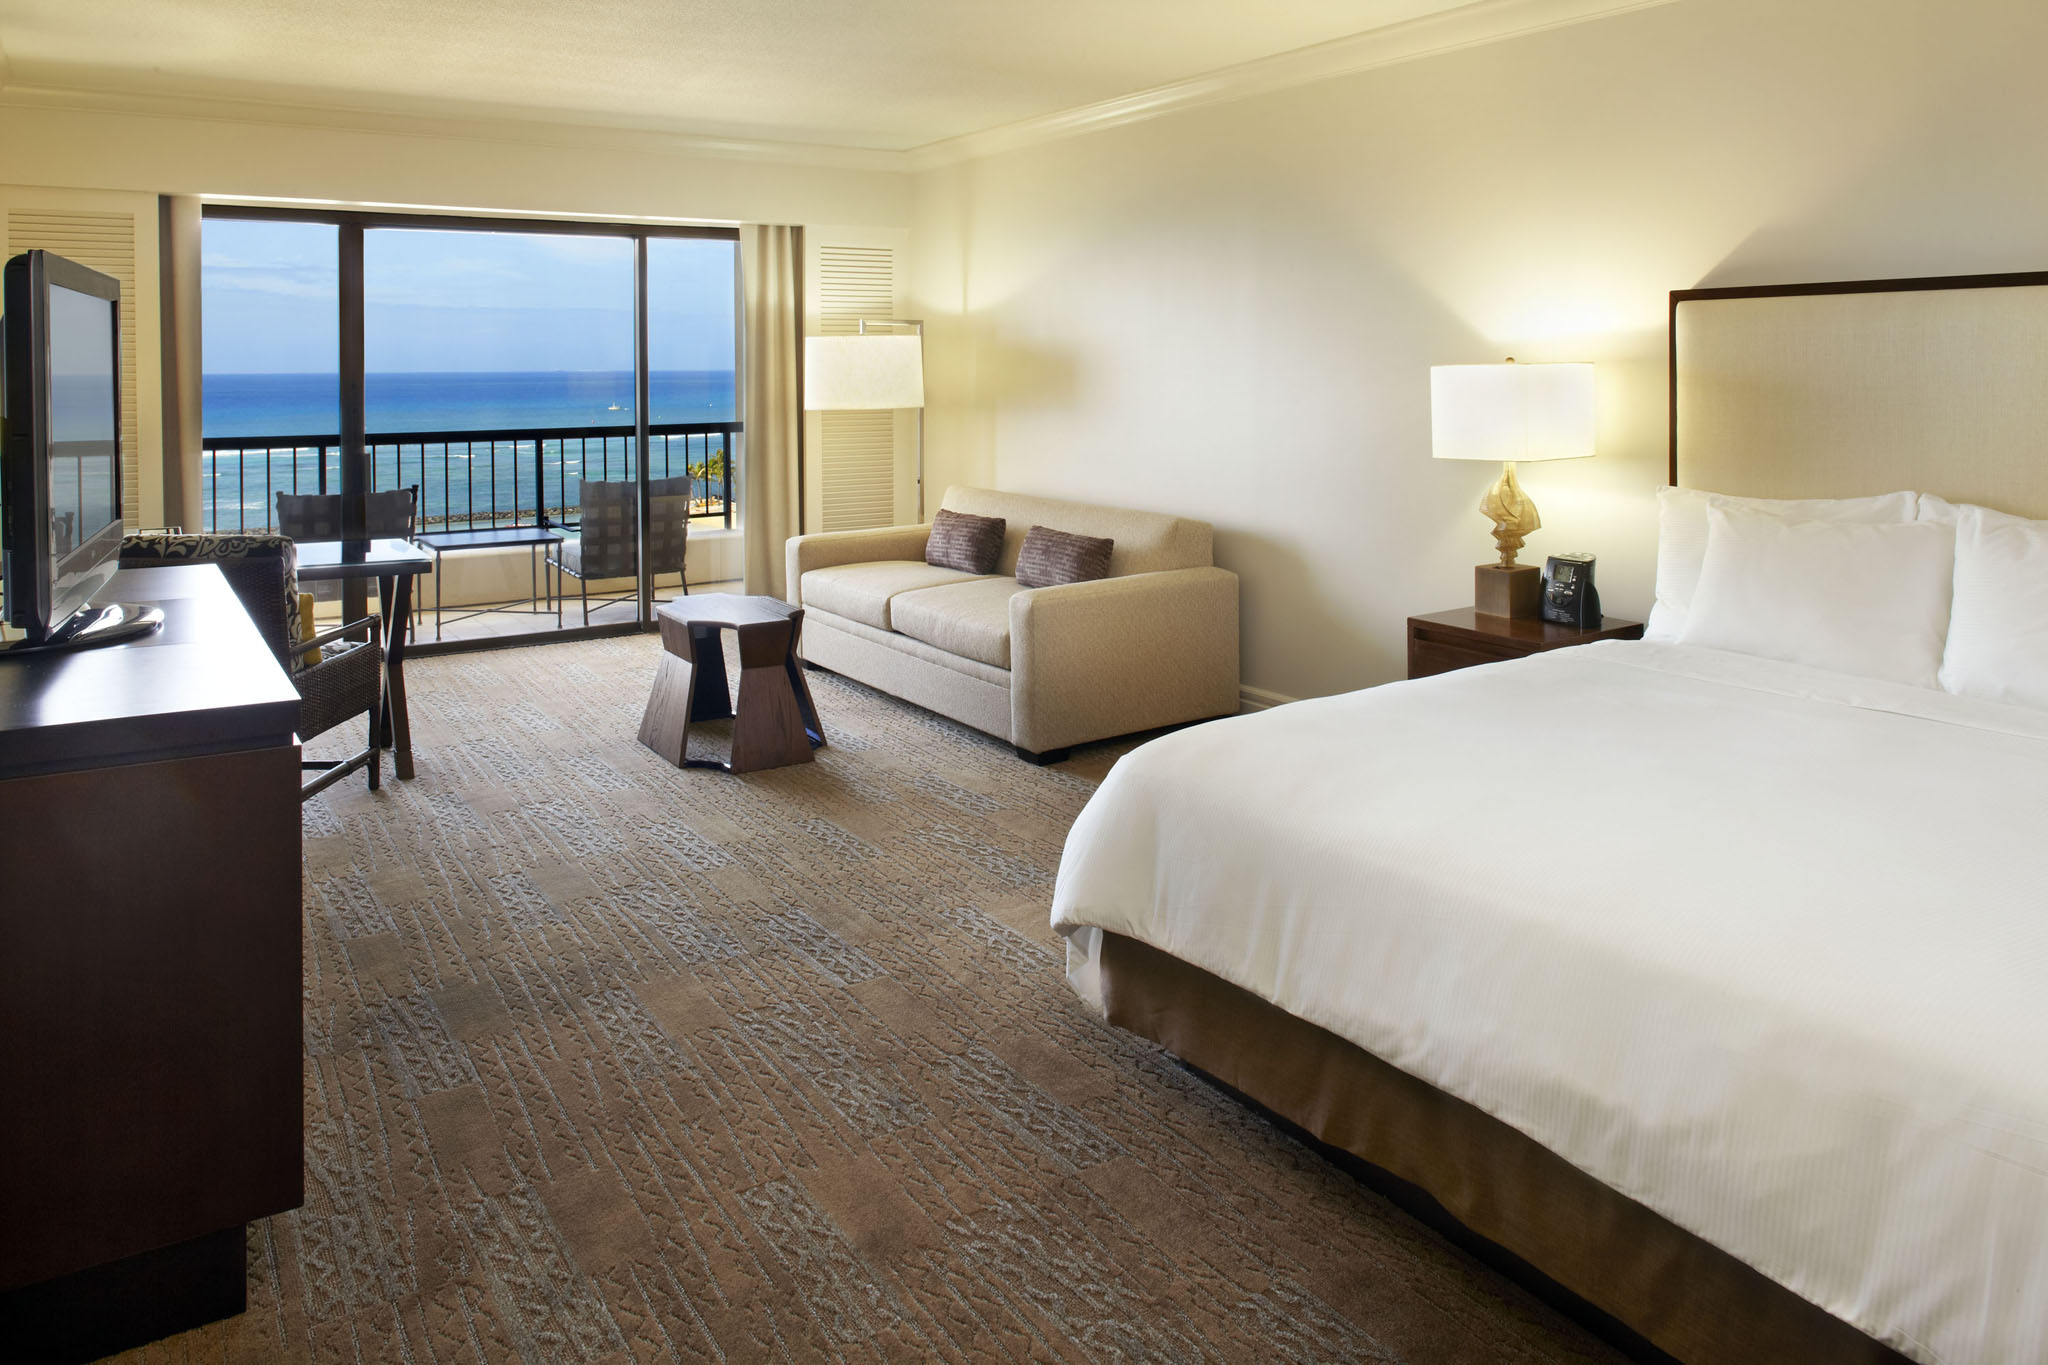 USA-Hawaii-Oahu-Hilton Hawaiian Village-Alii Tower Guestroom.jpg